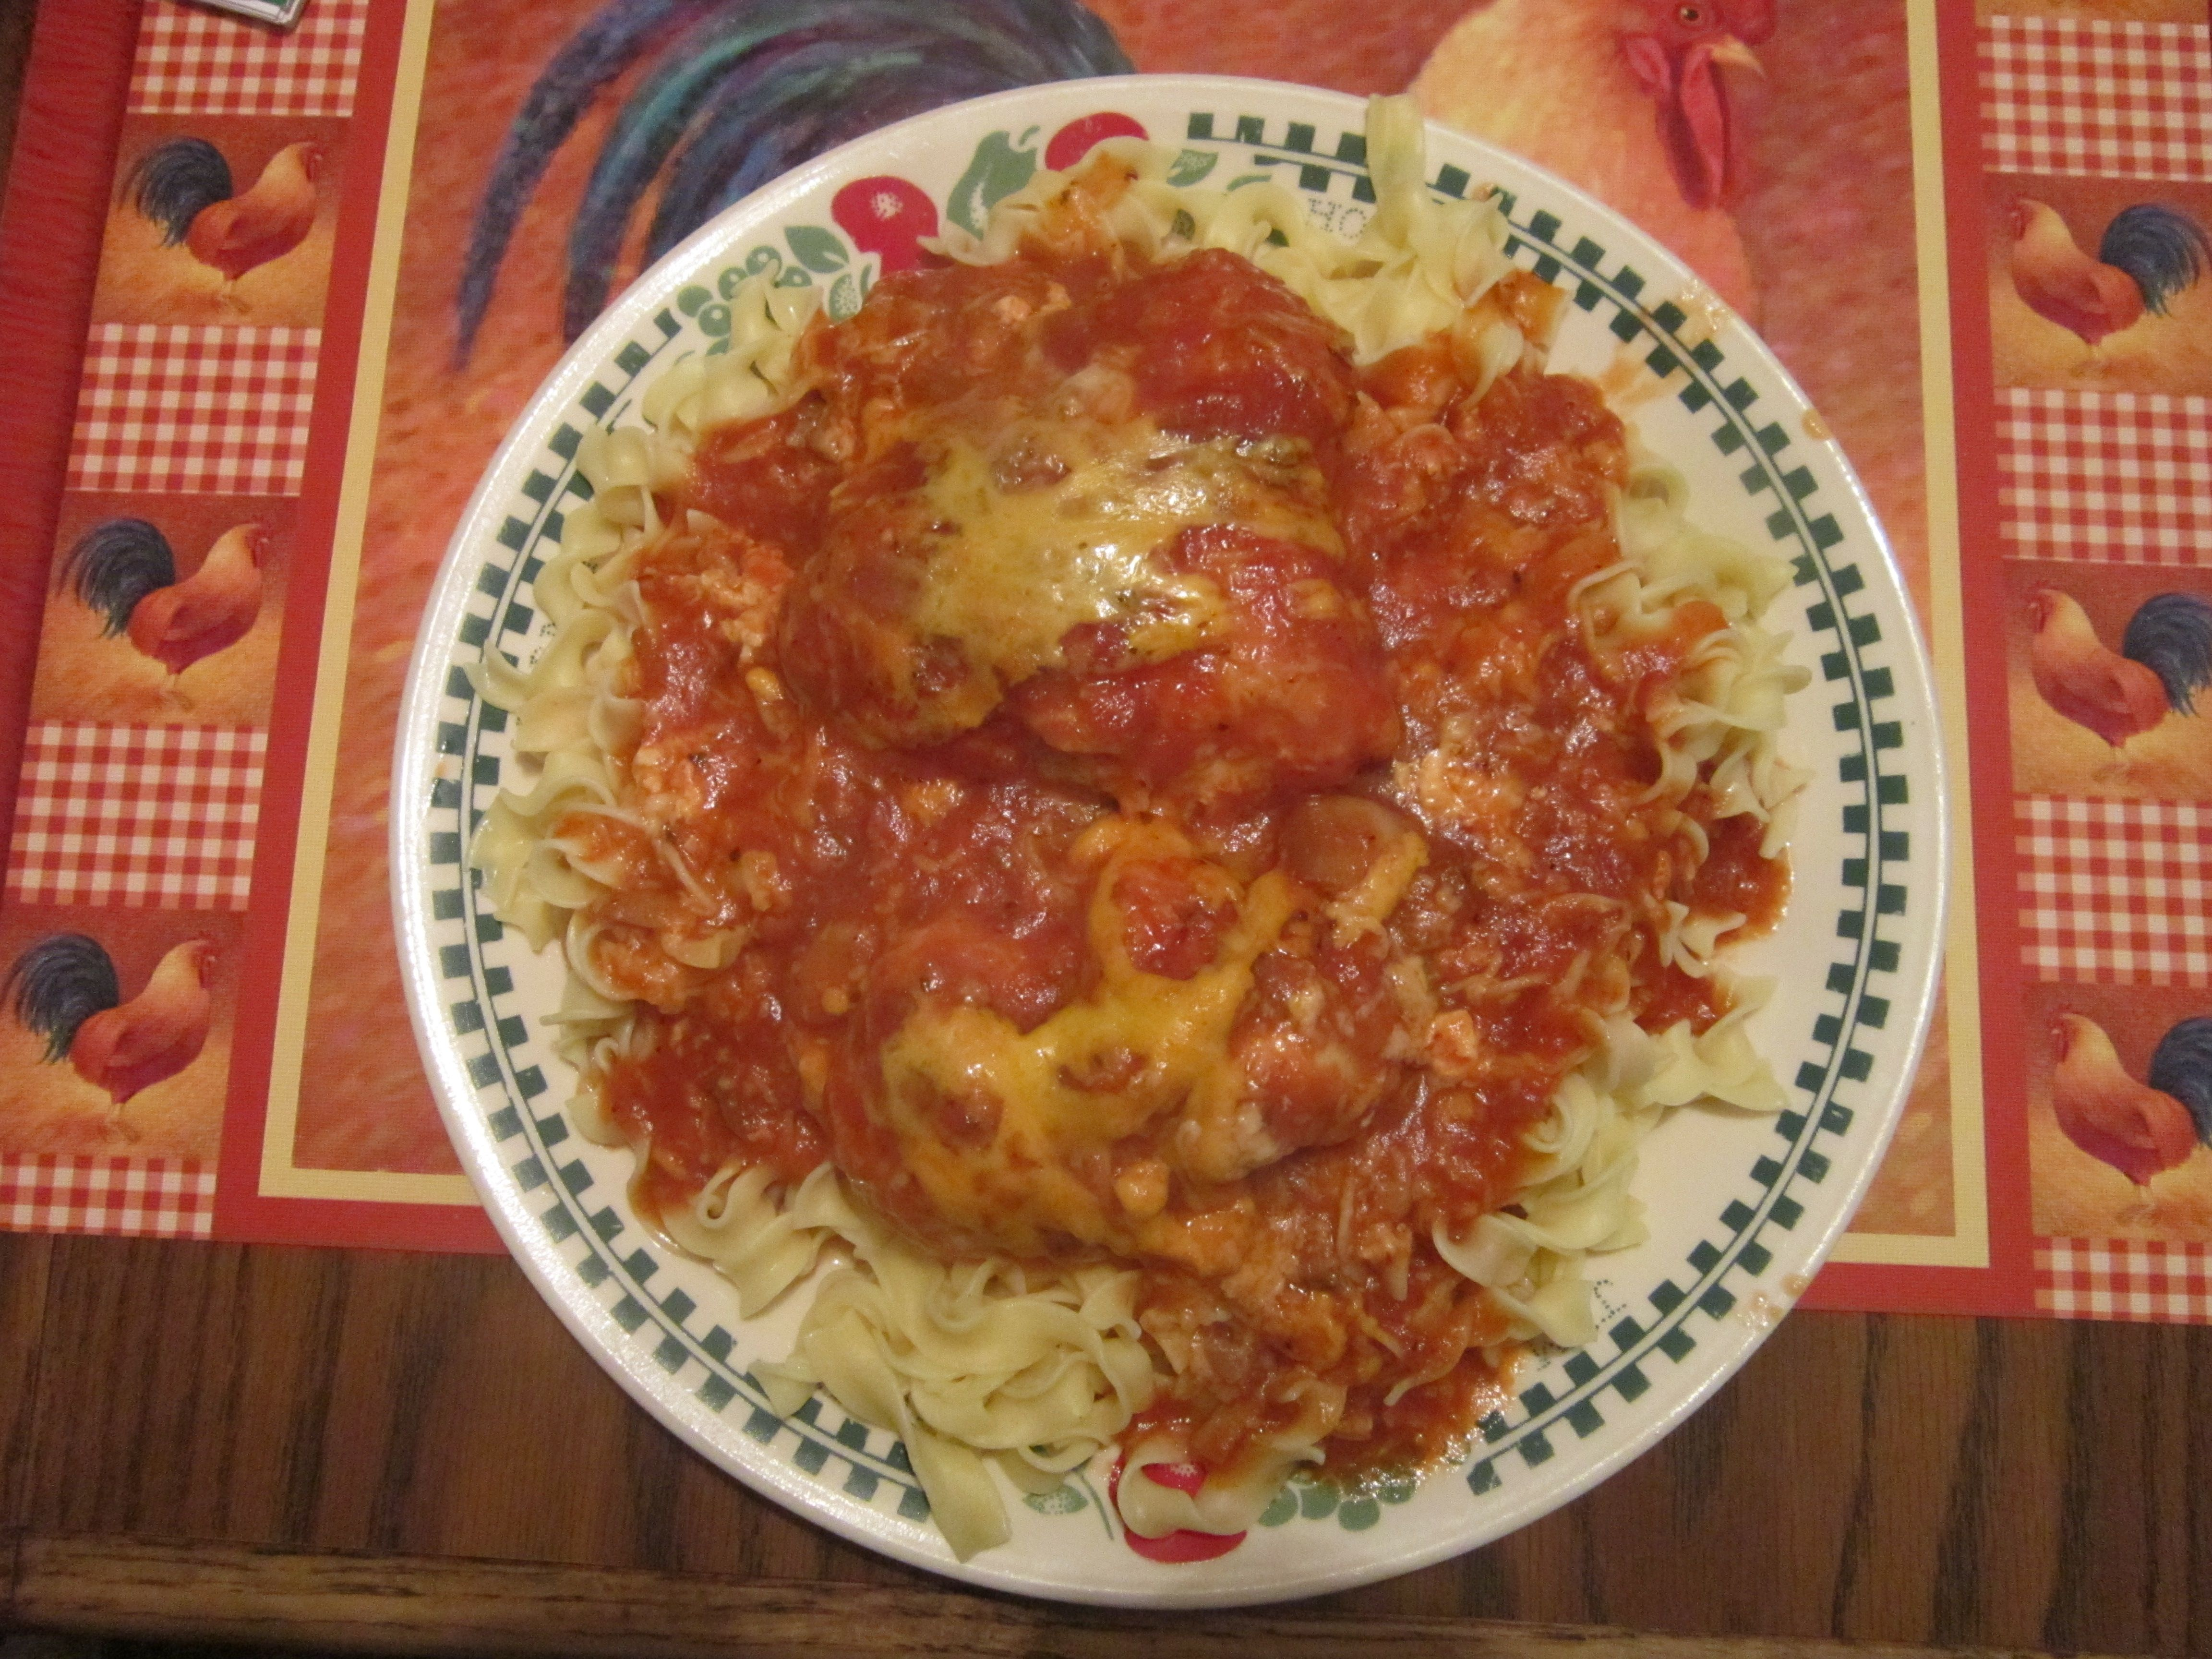 Boneless, skinless chicken breast cooked in Ragu. Seasoned with Italian seasoning and garlic powder. Topped with shredded mozzarella and cheddar cheese. Served over a bed of Egg noodles.